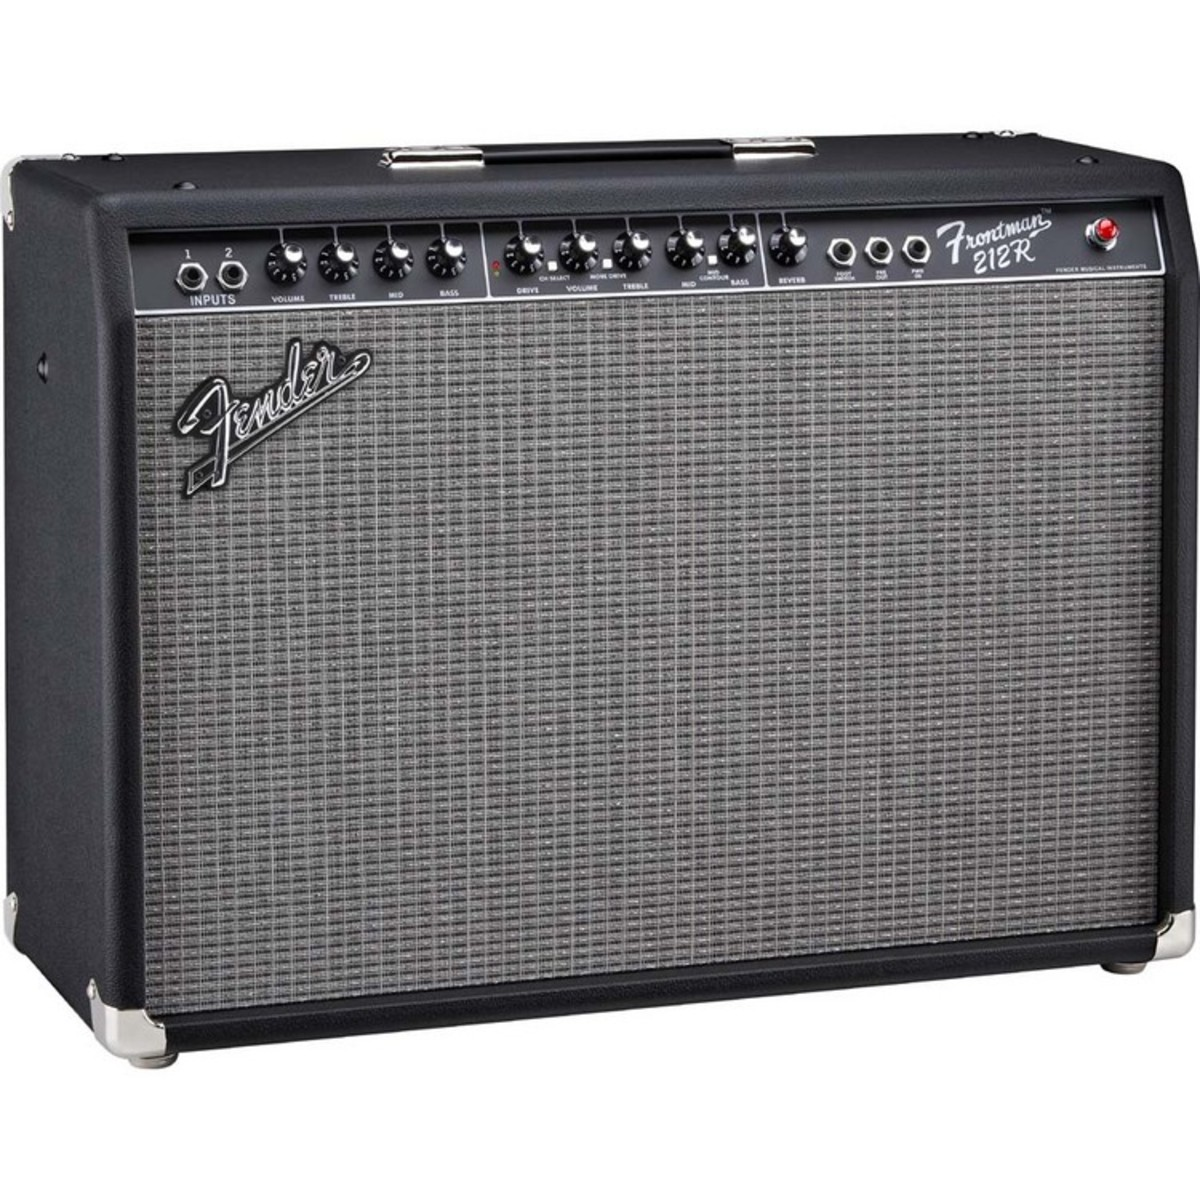 fender frontman 212r amplifier with reverb nearly new at. Black Bedroom Furniture Sets. Home Design Ideas